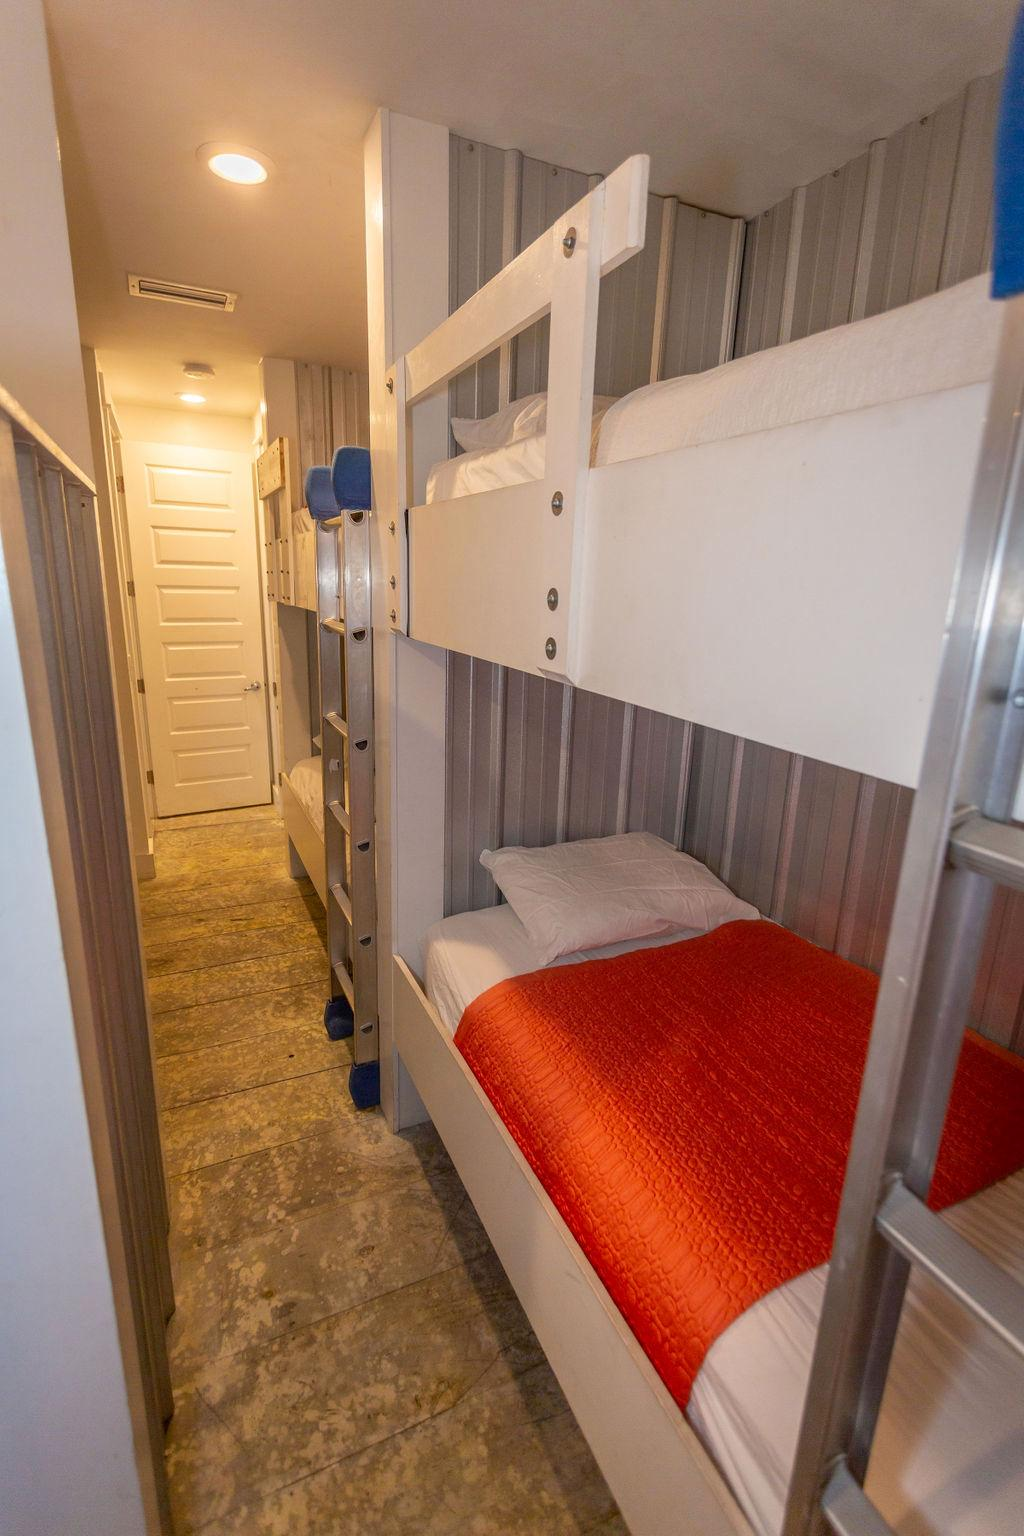 br # 3 has 3 sets of bunks/bath/private exit